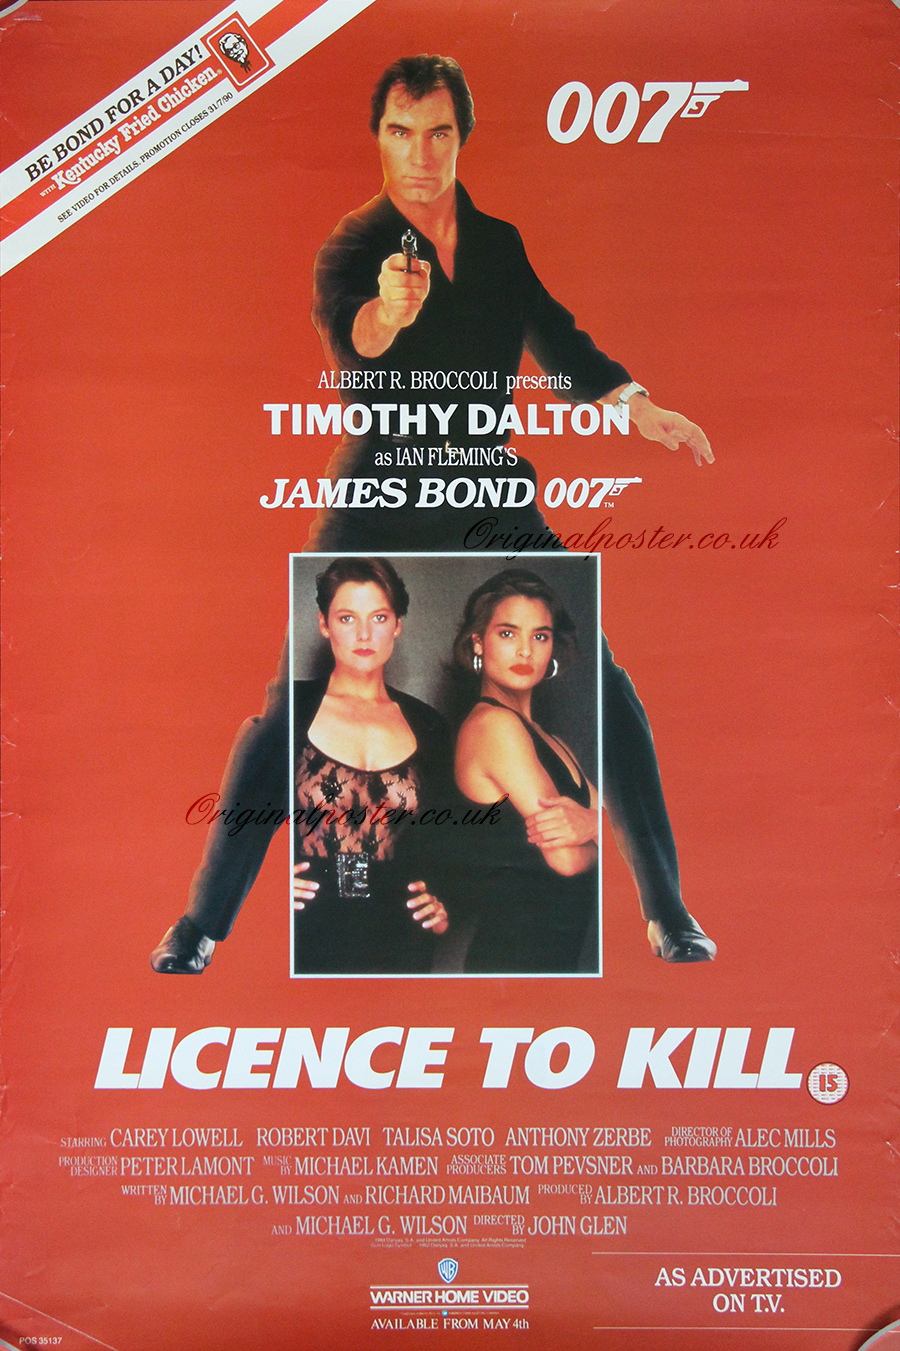 Licence to Kill, Original Vintage Film Poster | Original ...